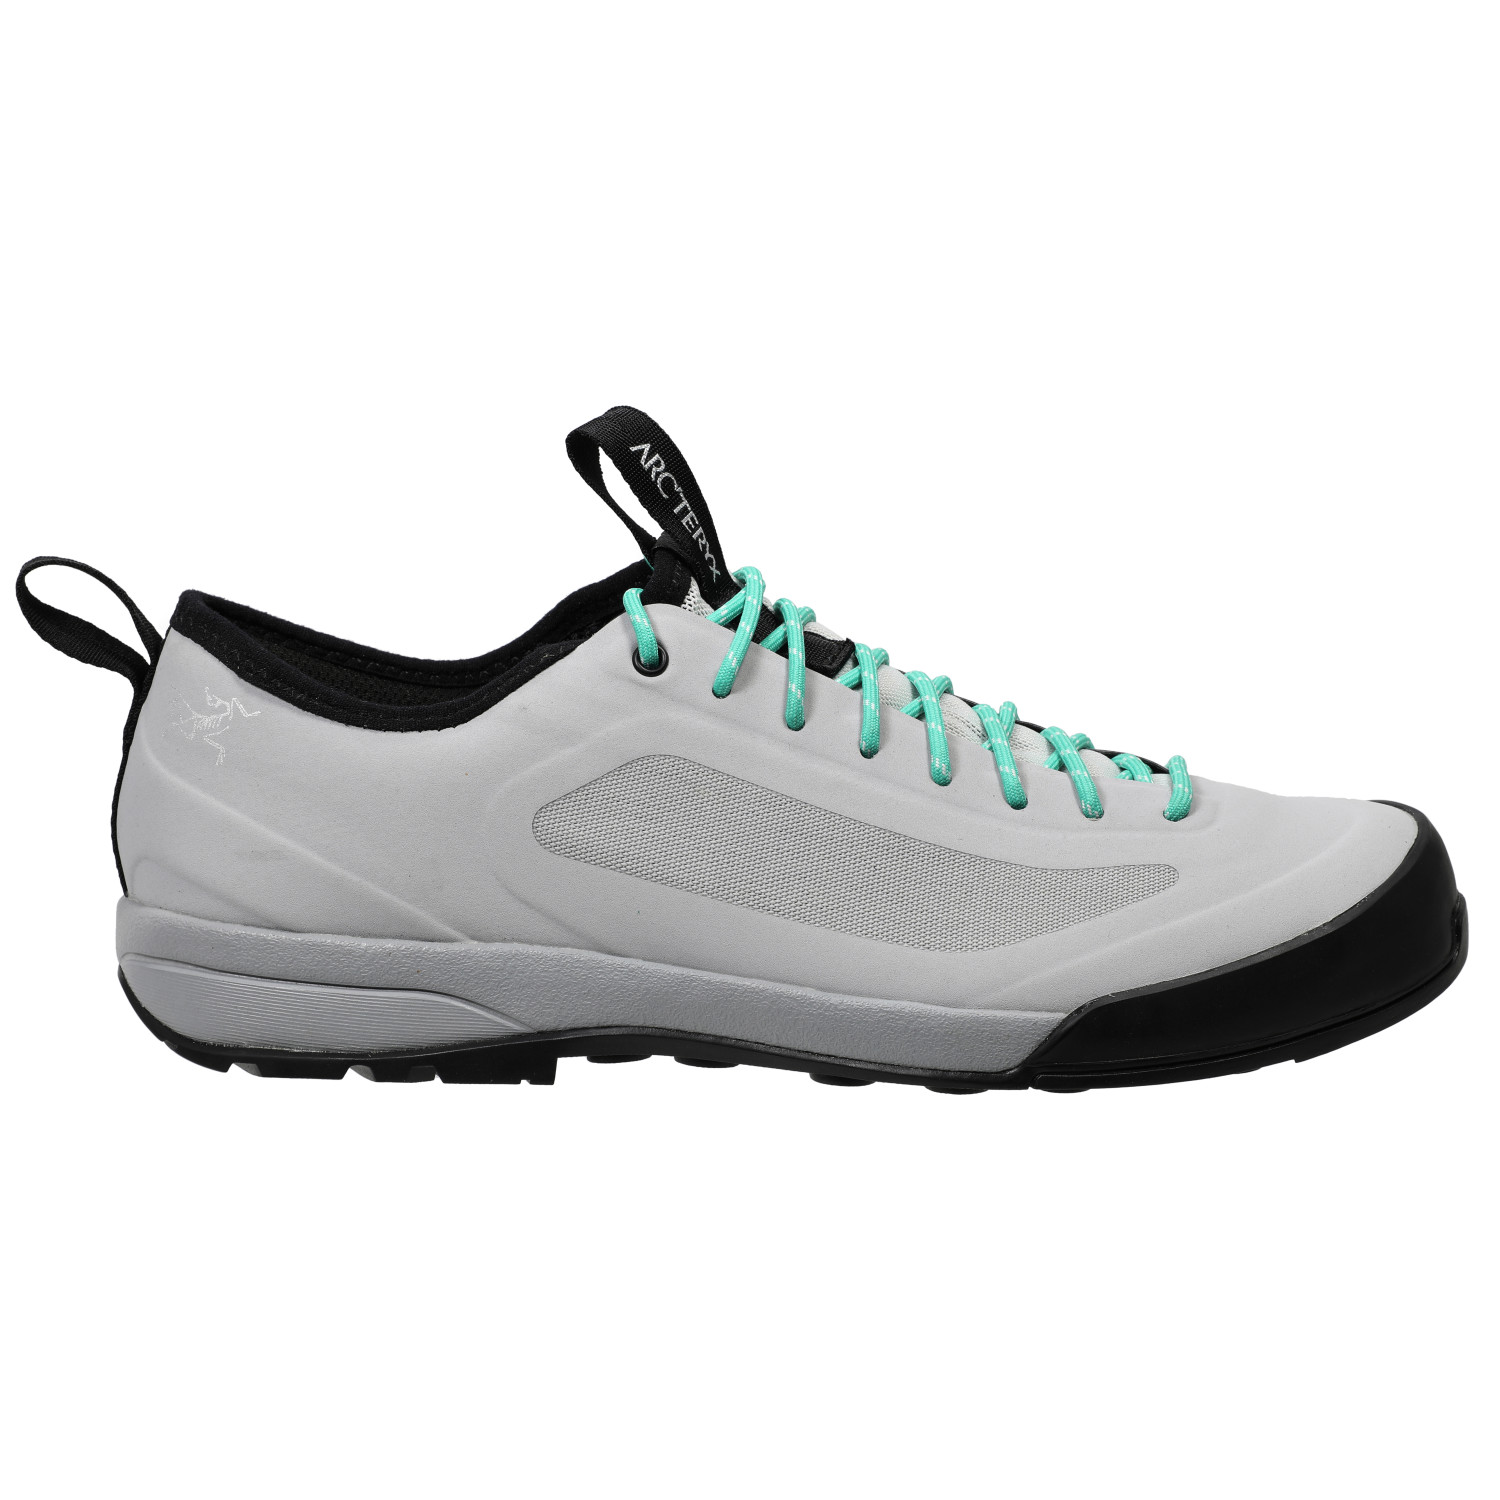 Main product image: Acrux SL Approach Shoe Women's